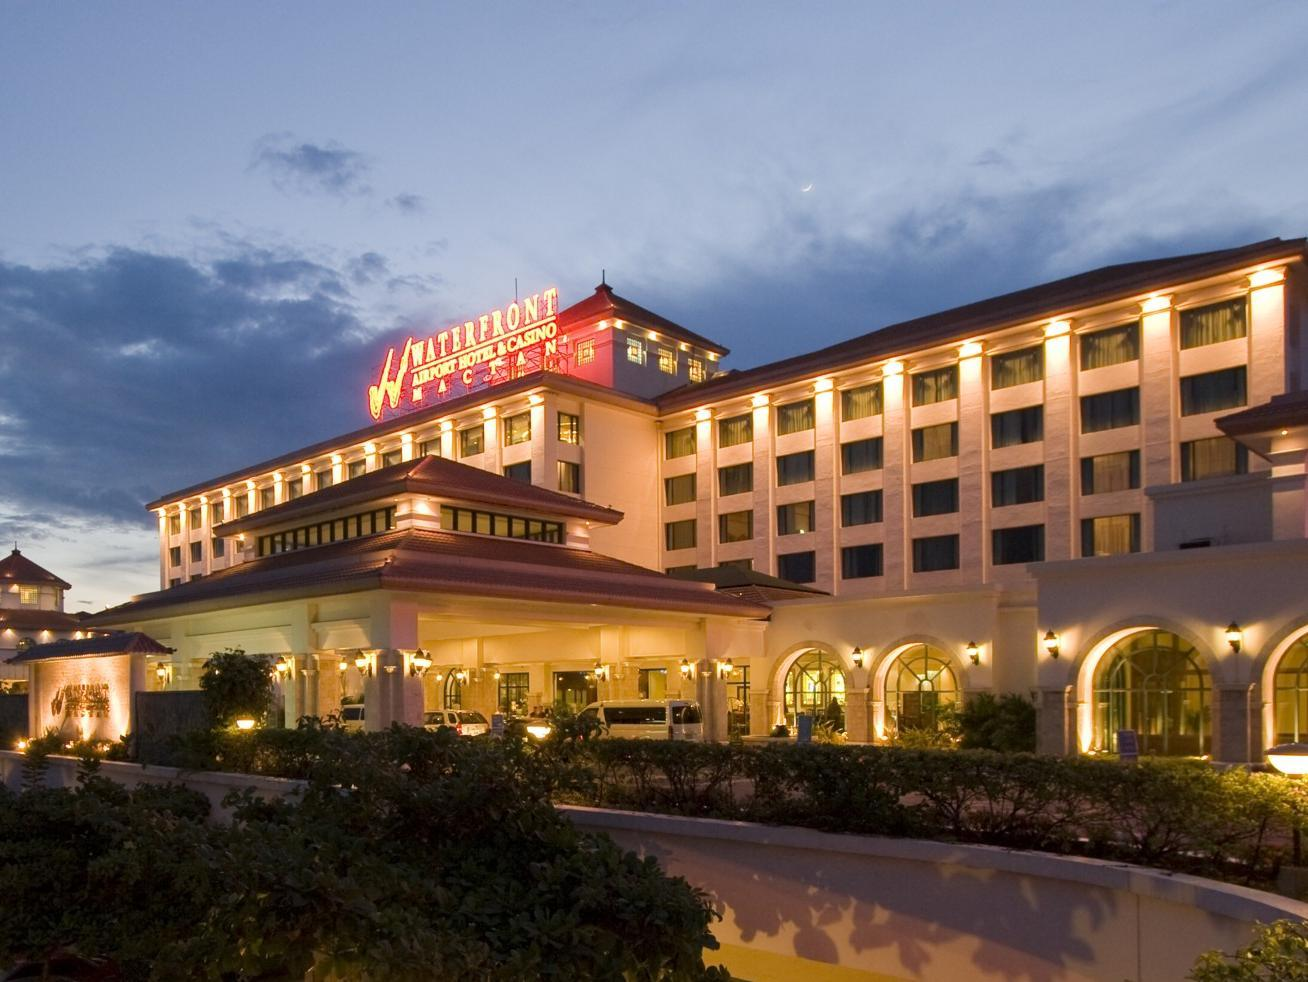 Waterfront Airport Hotel and Casino Cebú